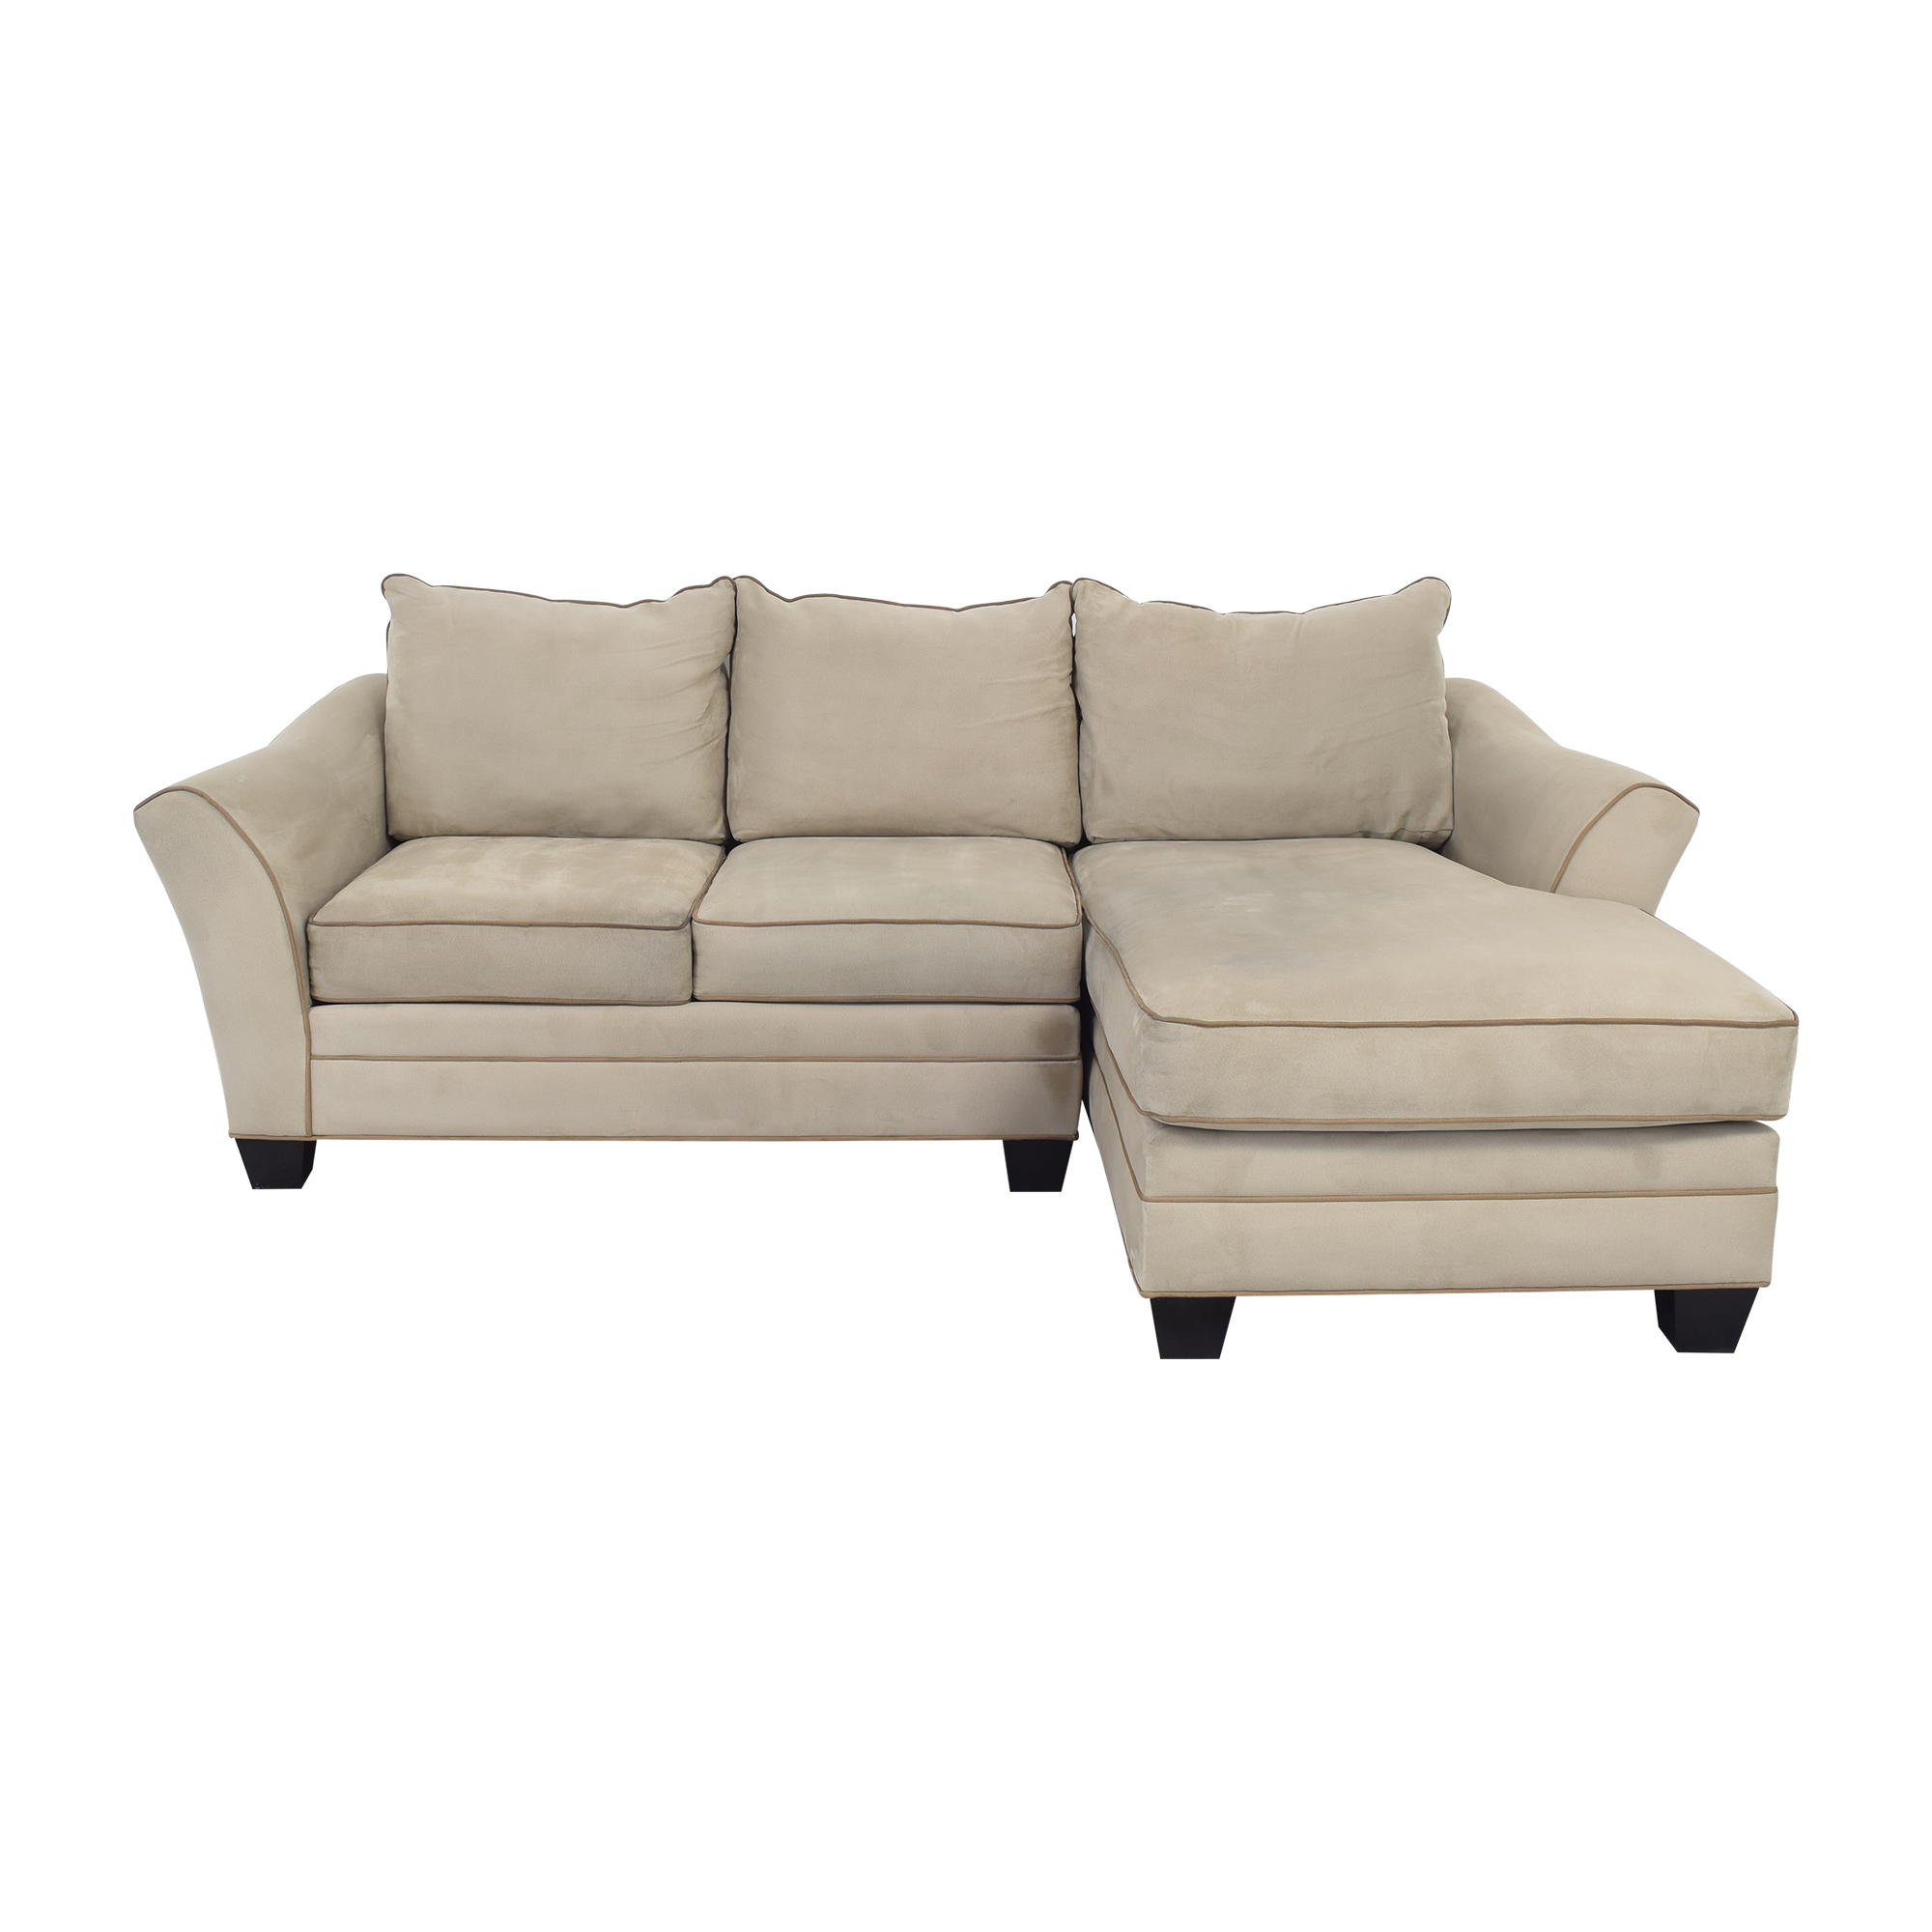 Raymour & Flanigan Raymour & Flanigan Chaise Sectional Sofa on sale